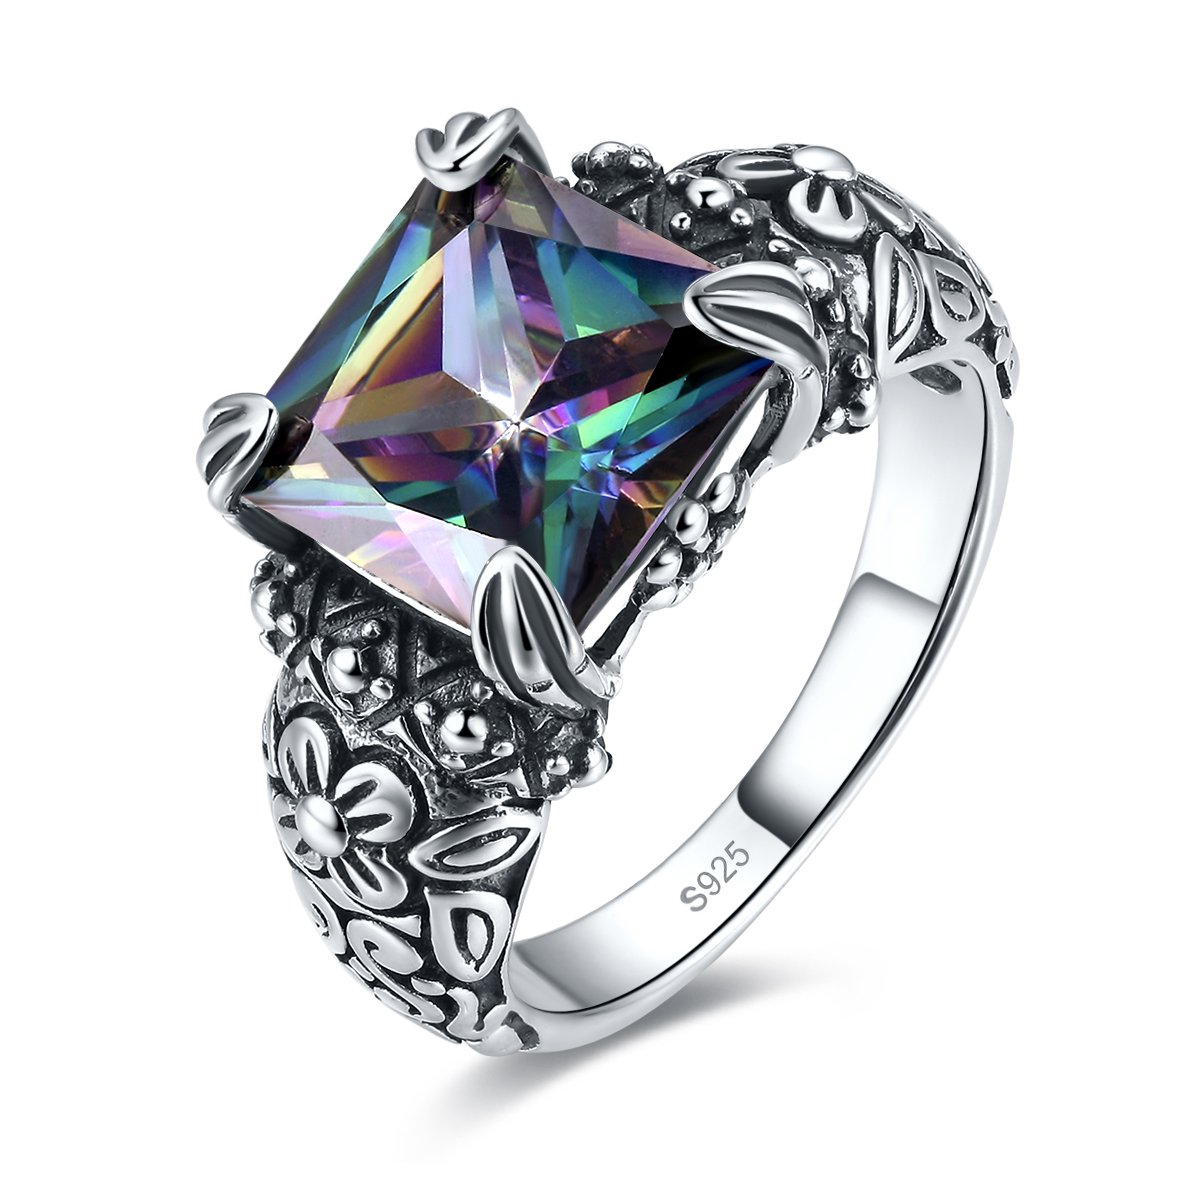 Merthus Antique Style Womens 925 Sterling Silver Created Mystic Rainbow Topaz Floral Band Ring